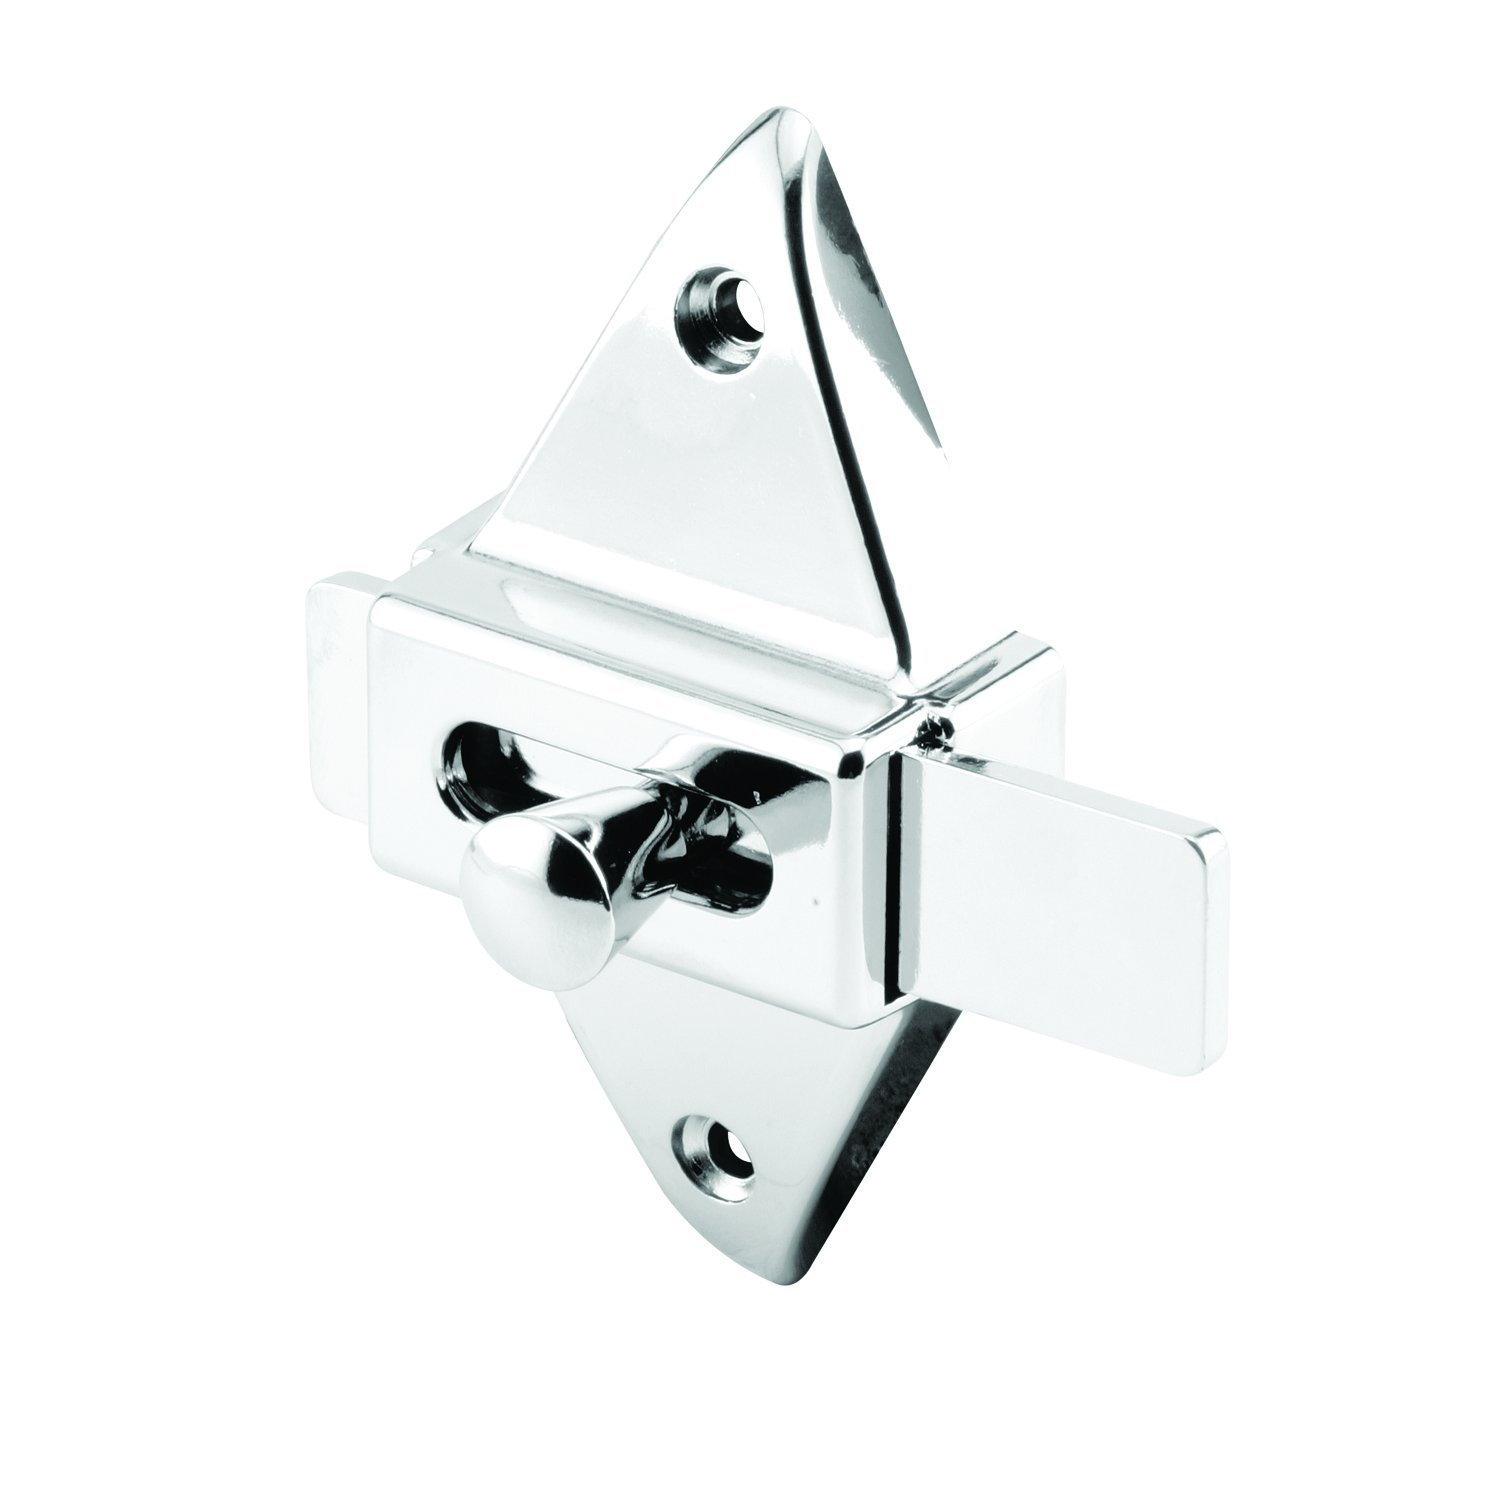 Sentry Supply 650-6599 2-3//4 Hole Center Spacing Brass Construction Chrome Plated Slide Latch